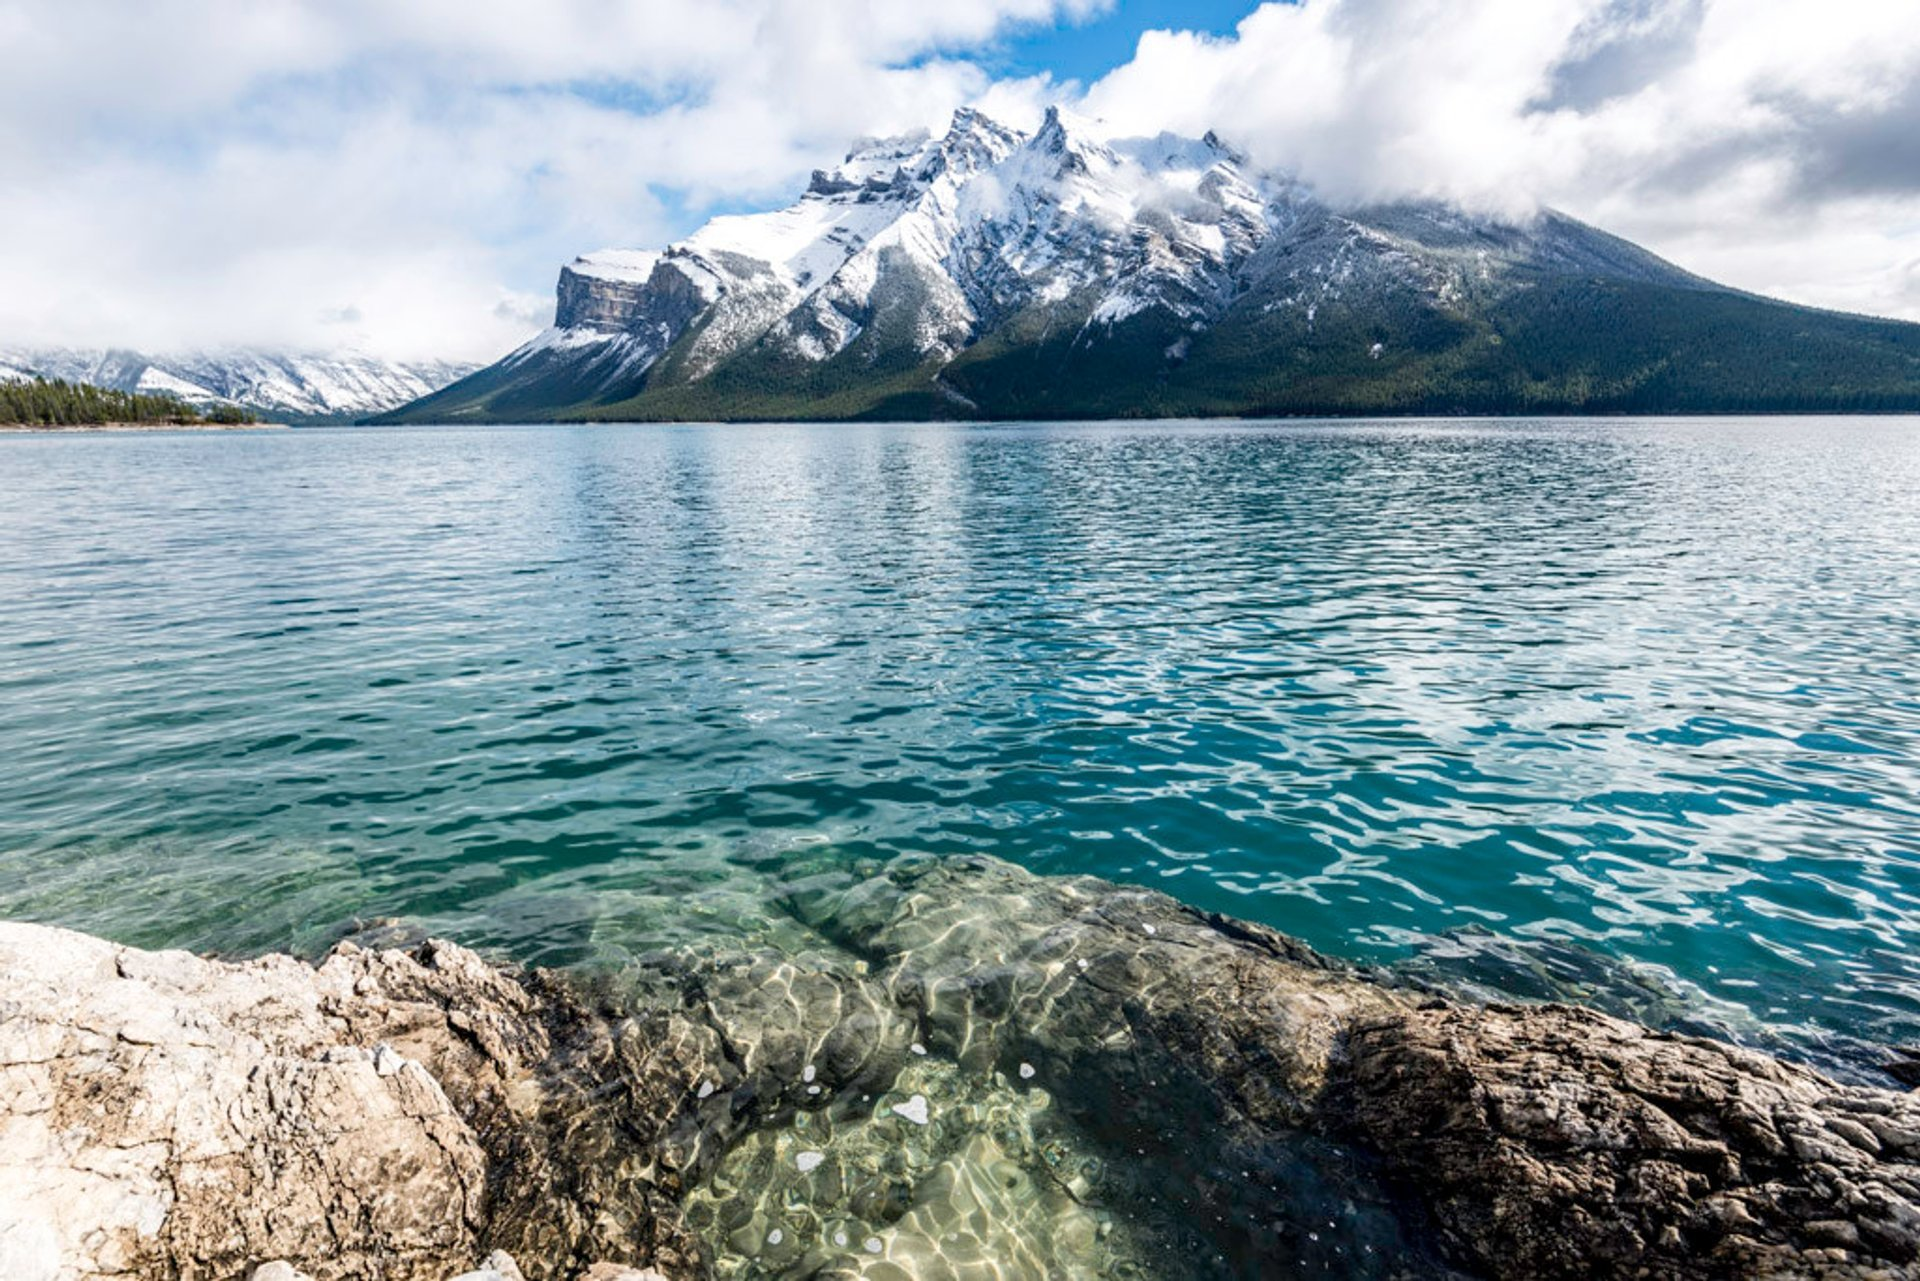 Lake Minnewanka Cruise in Banff & Jasper National Parks 2020 - Best Time